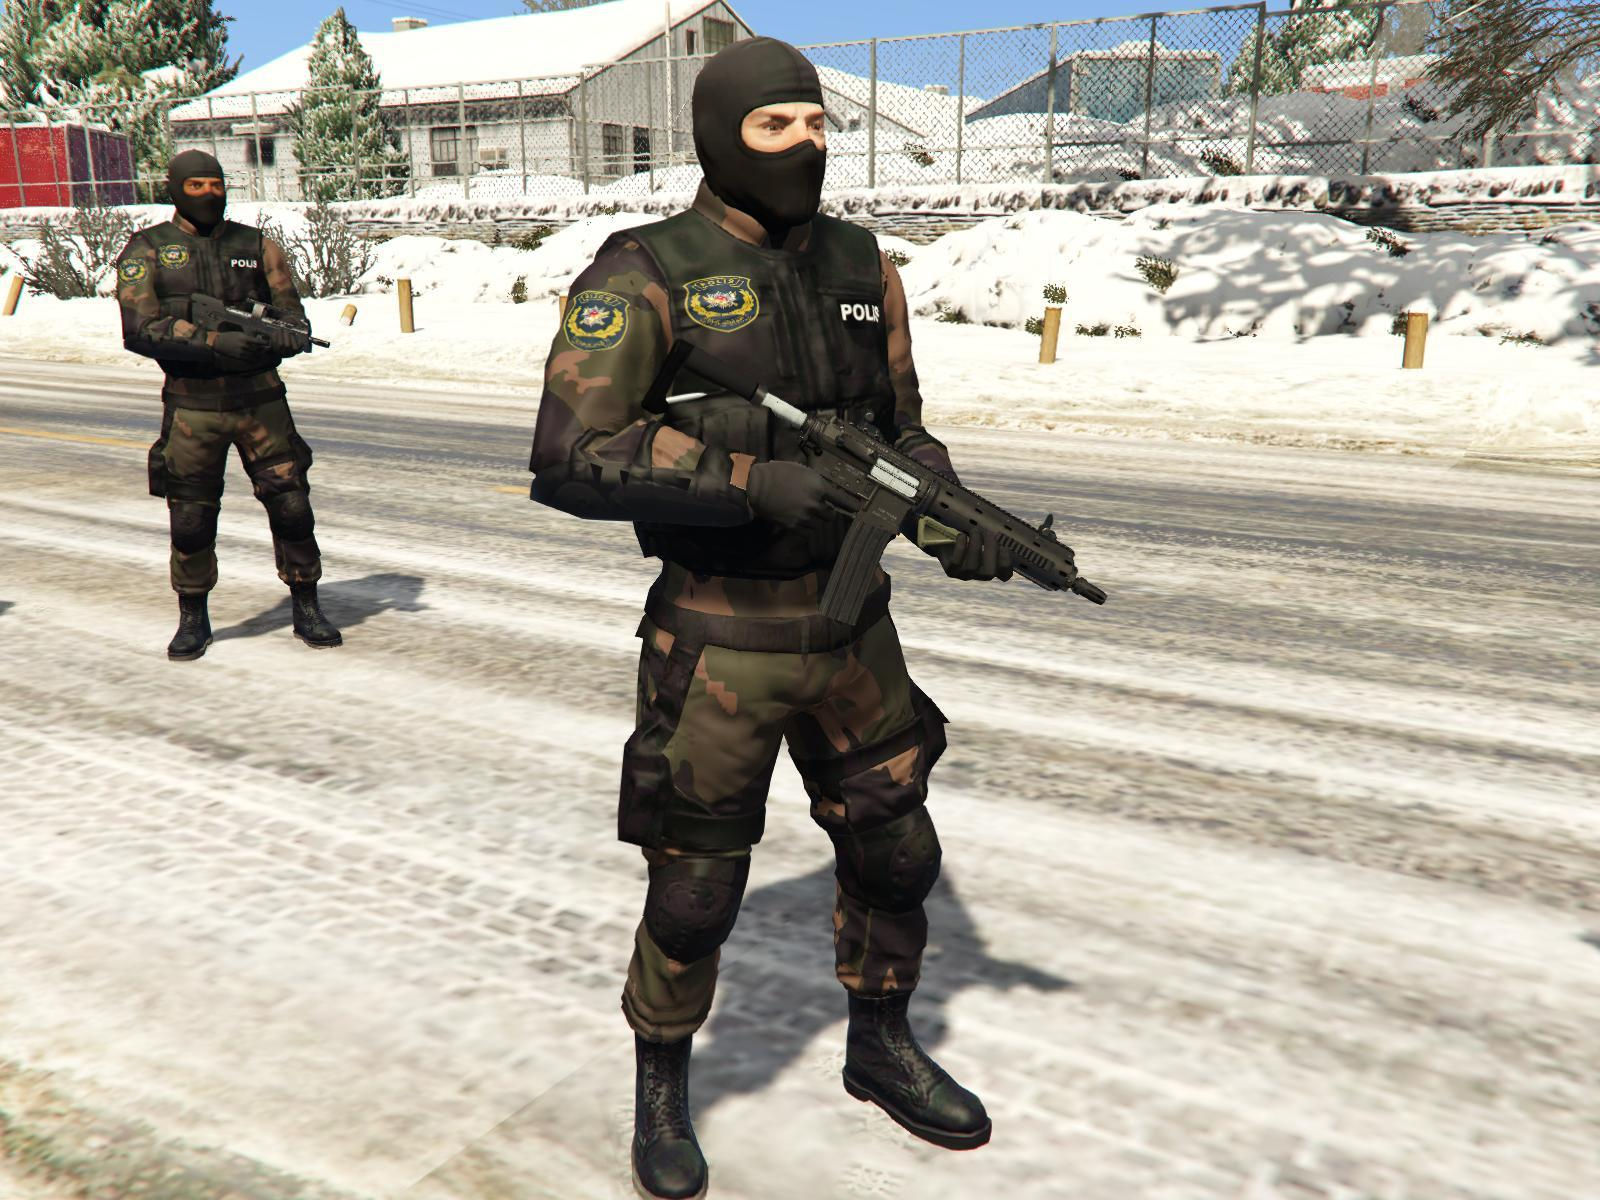 turkish swat polis 214zel harekat gta5modscom